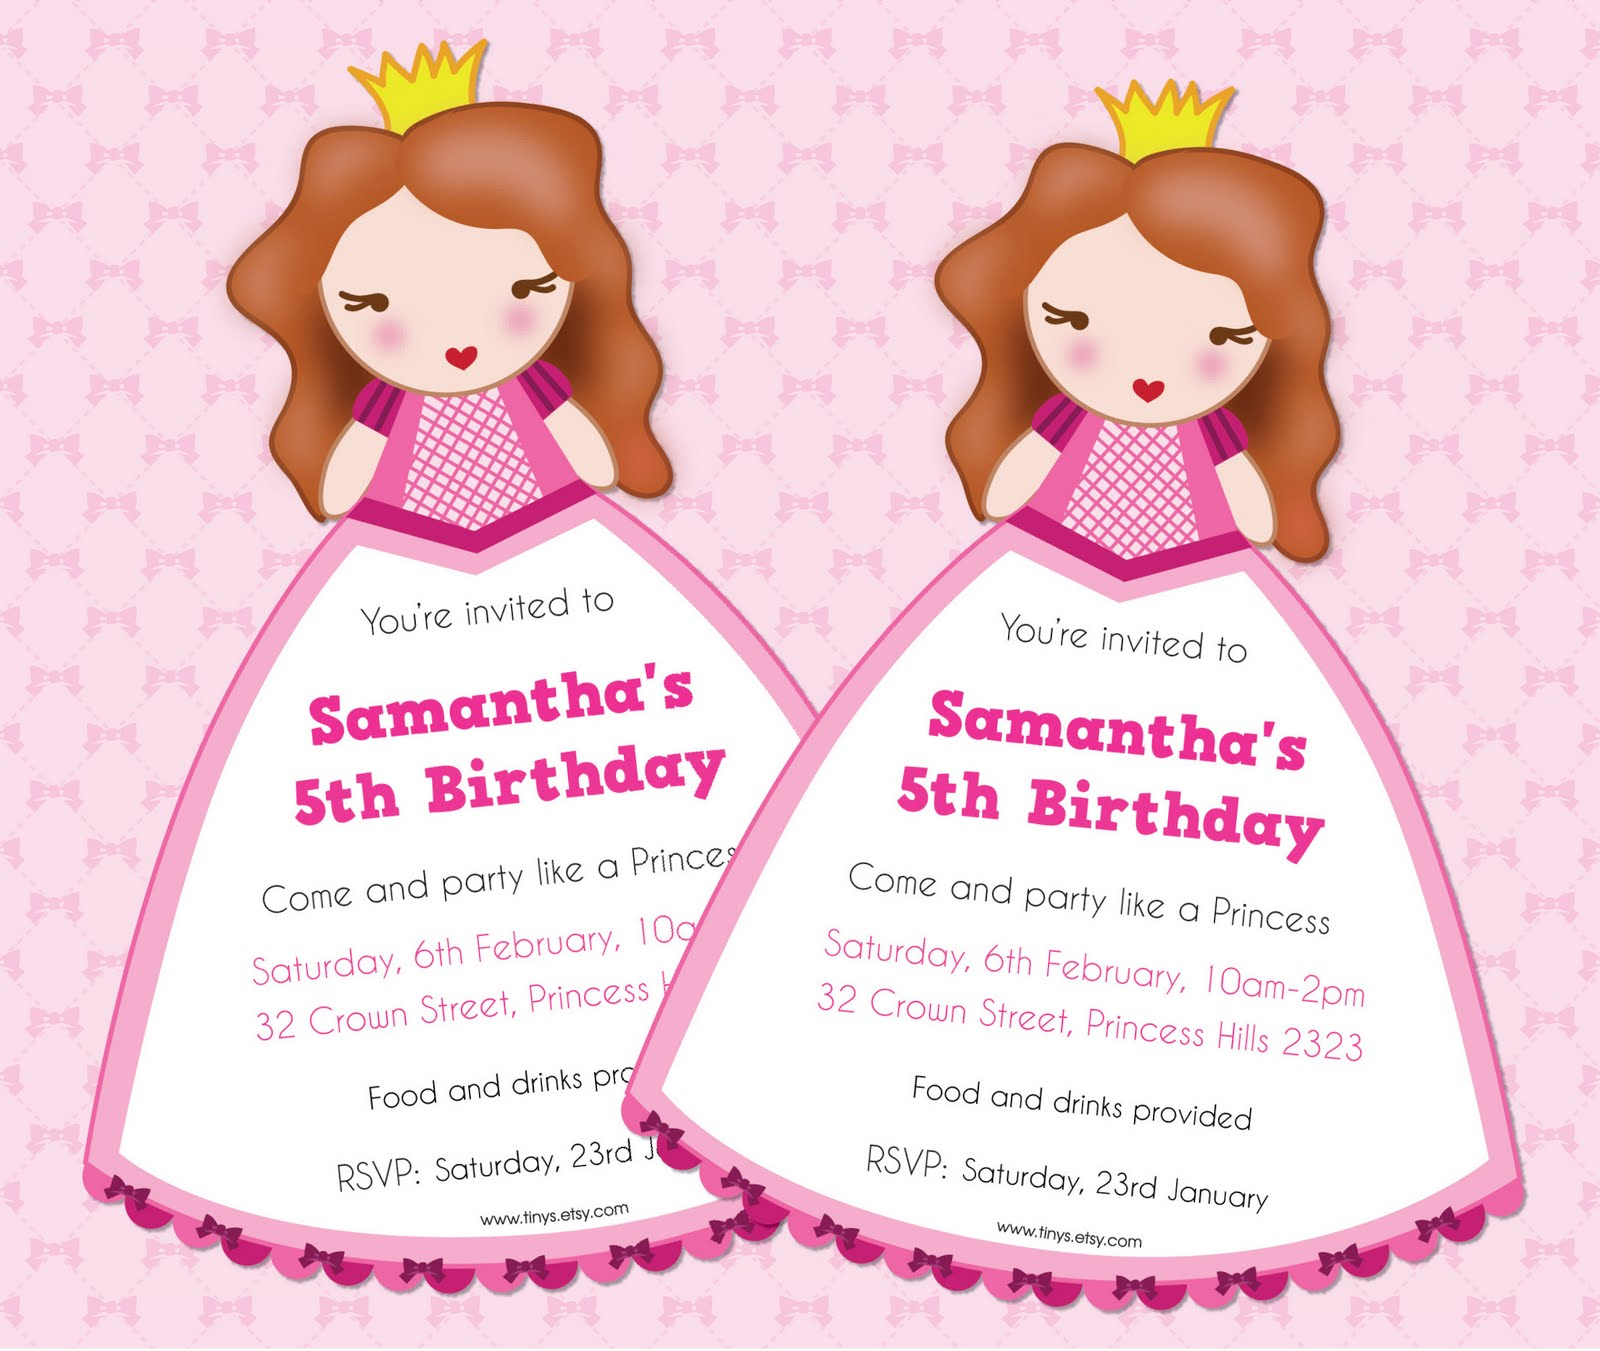 Tinysandtea free princess invite editable text free princess invite editable text filmwisefo